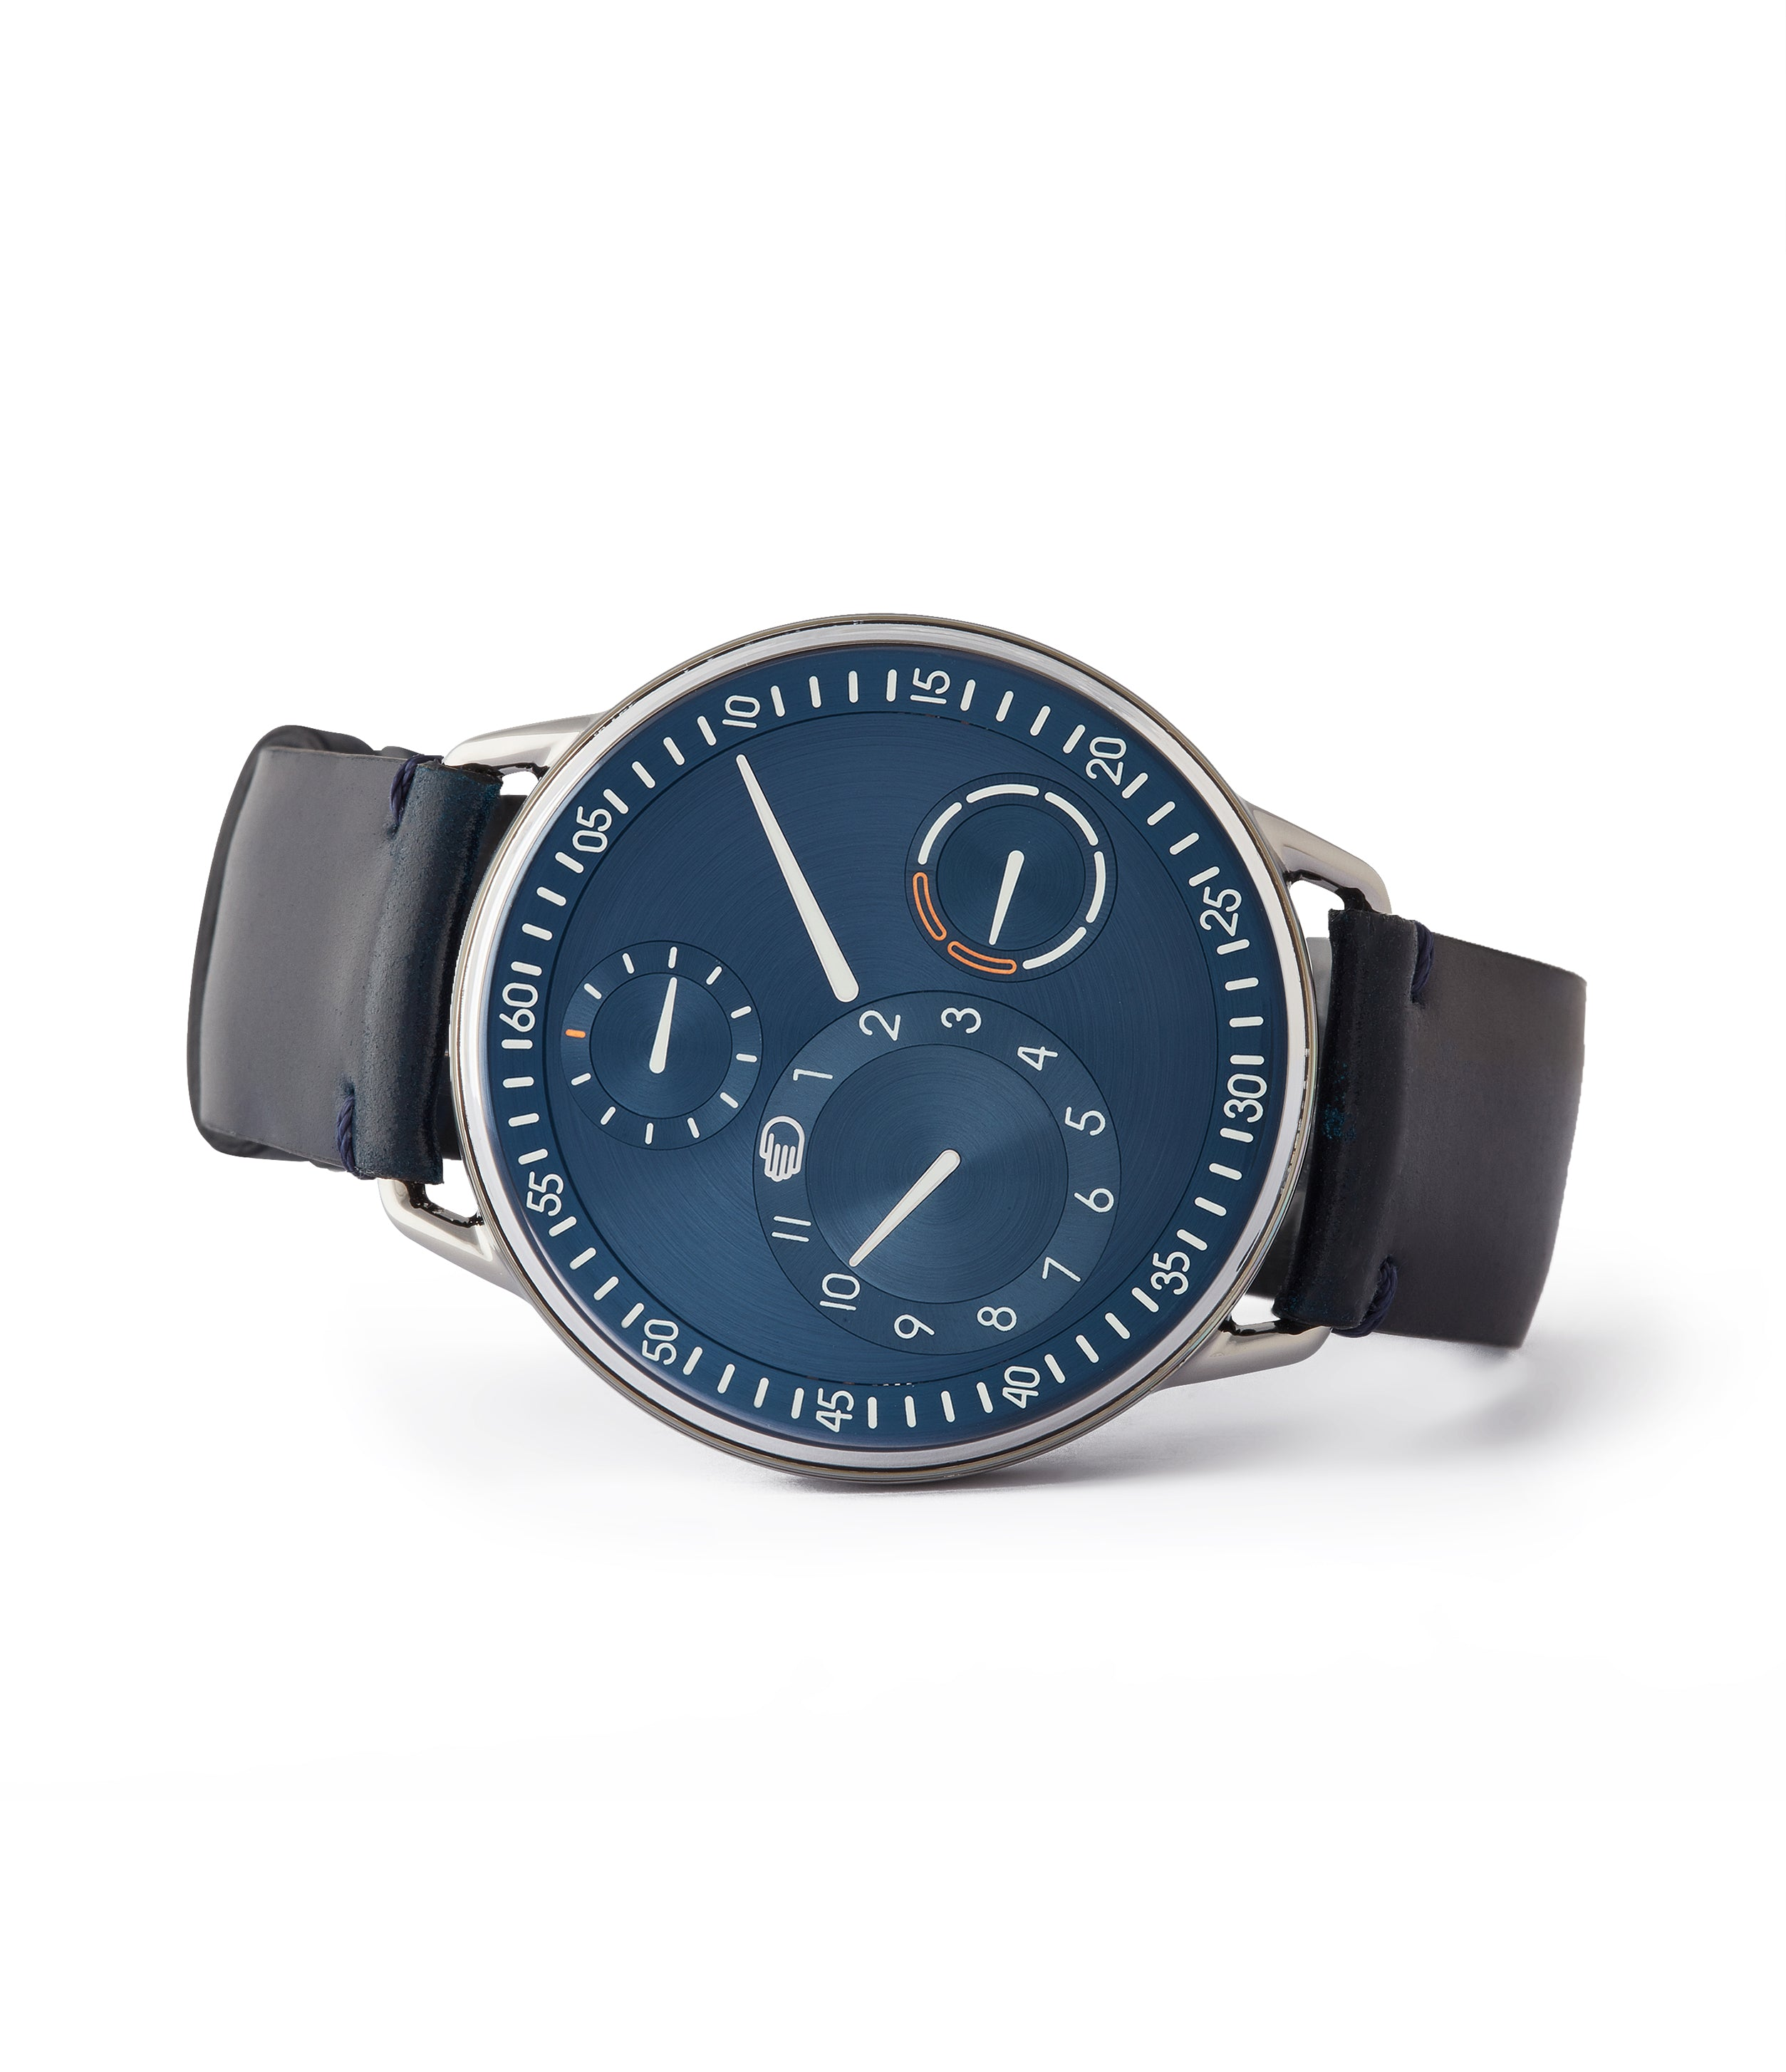 shop Ressence Type 1N titanium blue dial independent watchmaker watch for sale online at A Collected Man London UK specialist of rare watches